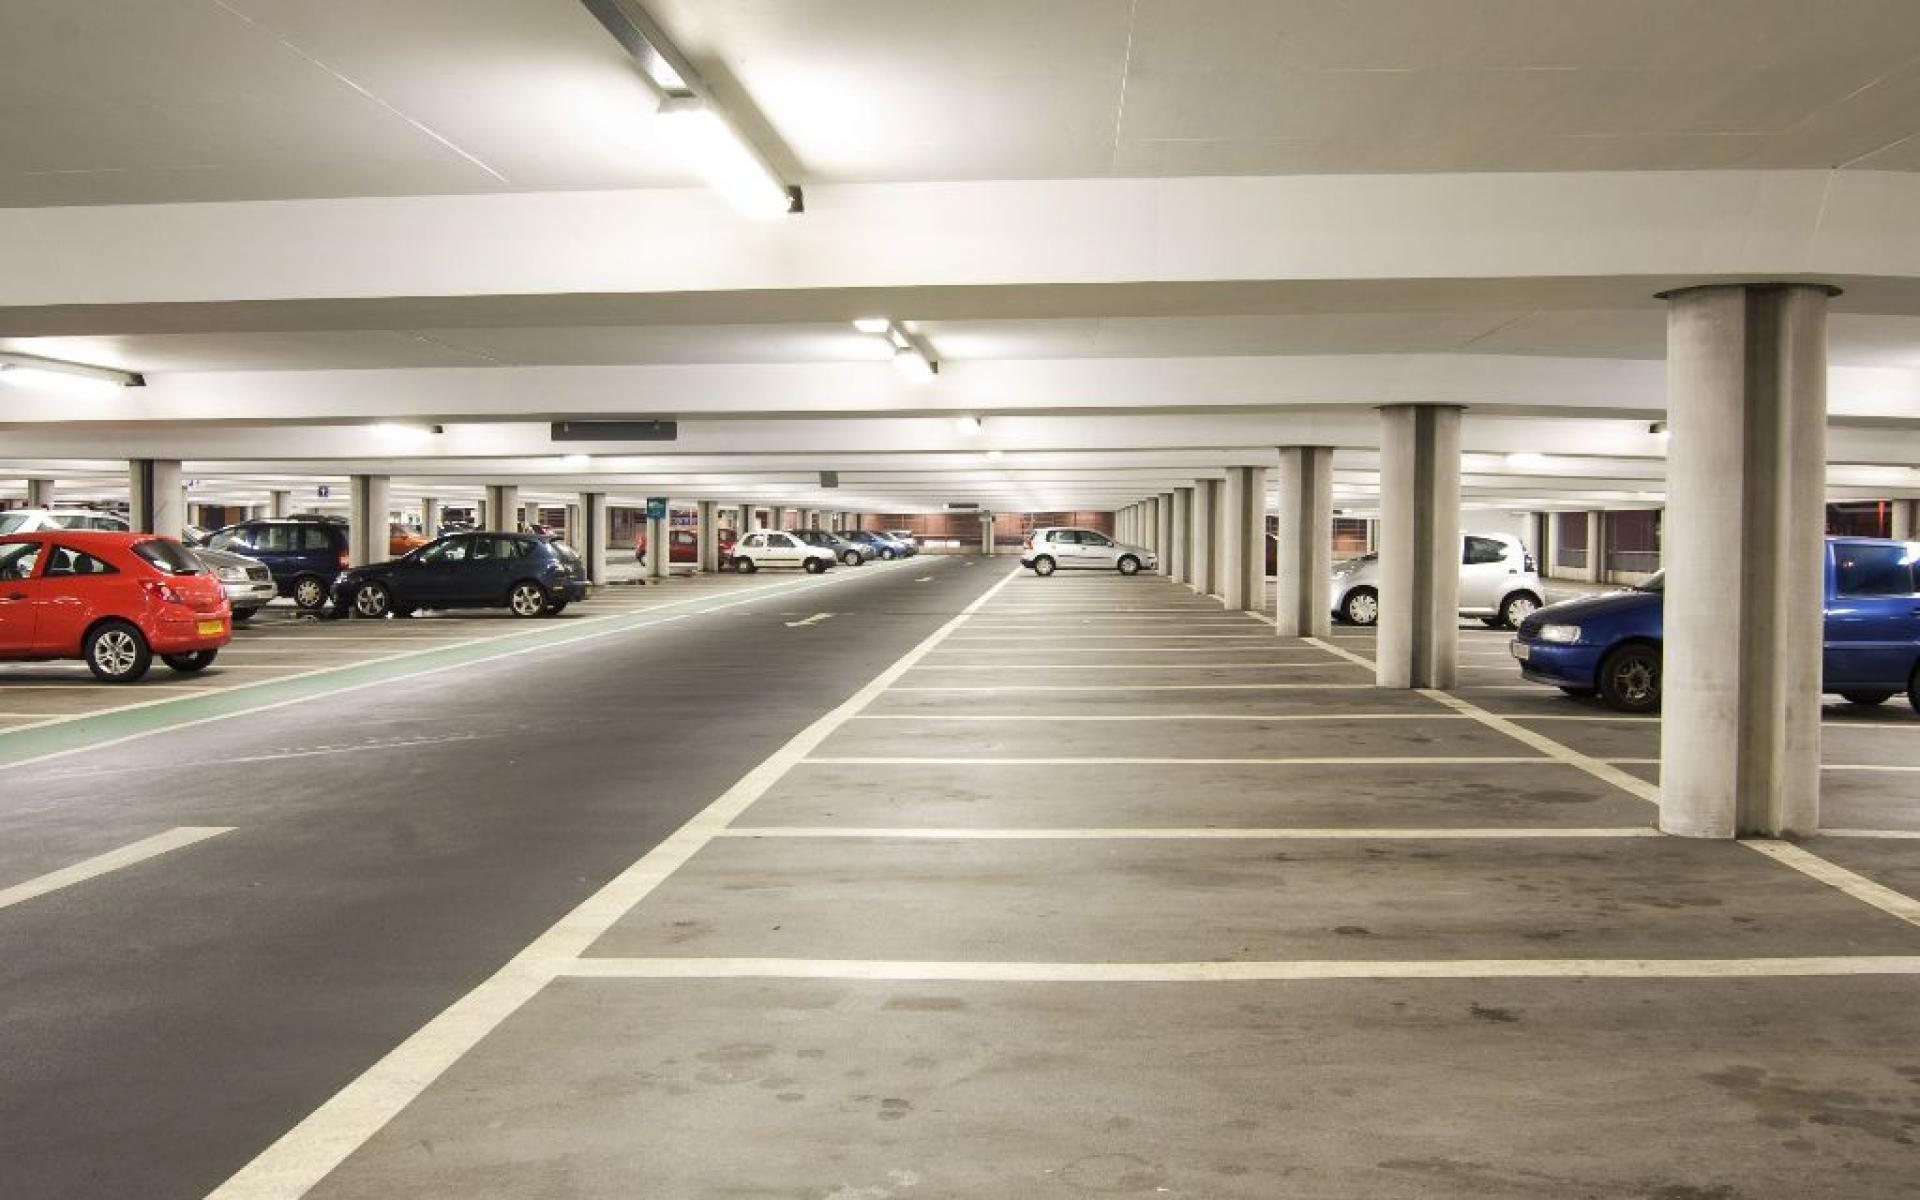 Location parking Paris, le secret d'une tâche facilitée